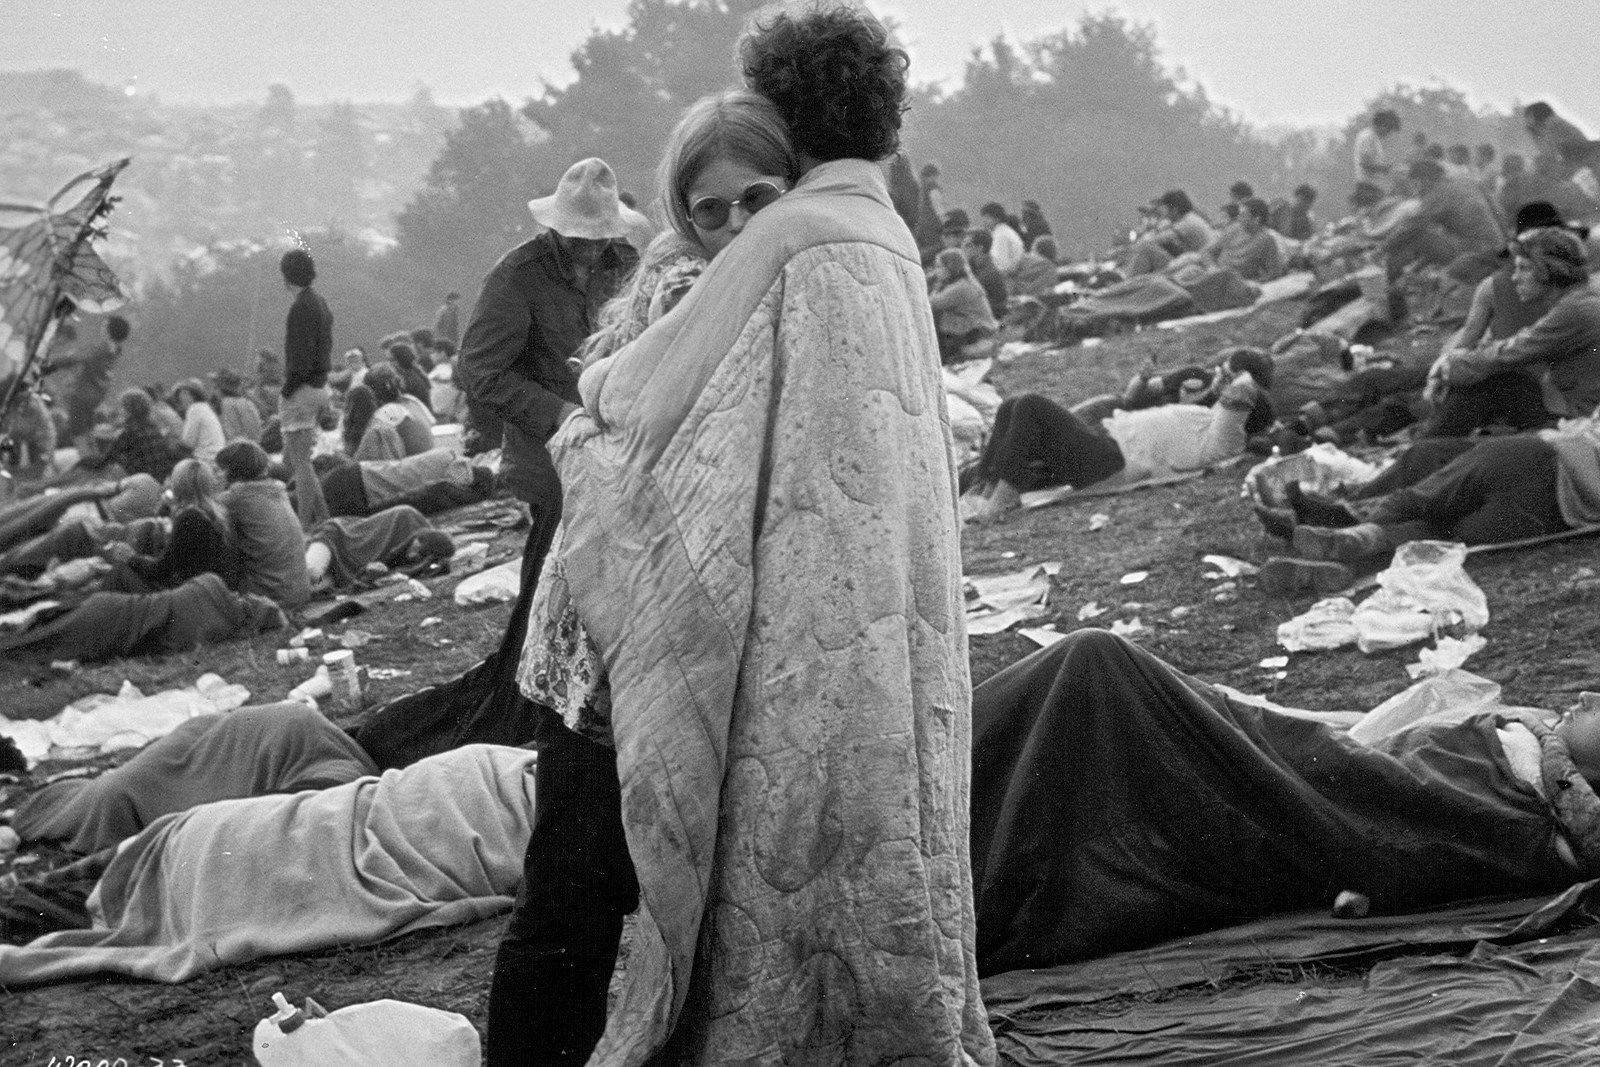 Couple on Woodstock Album Cover Is Still Together